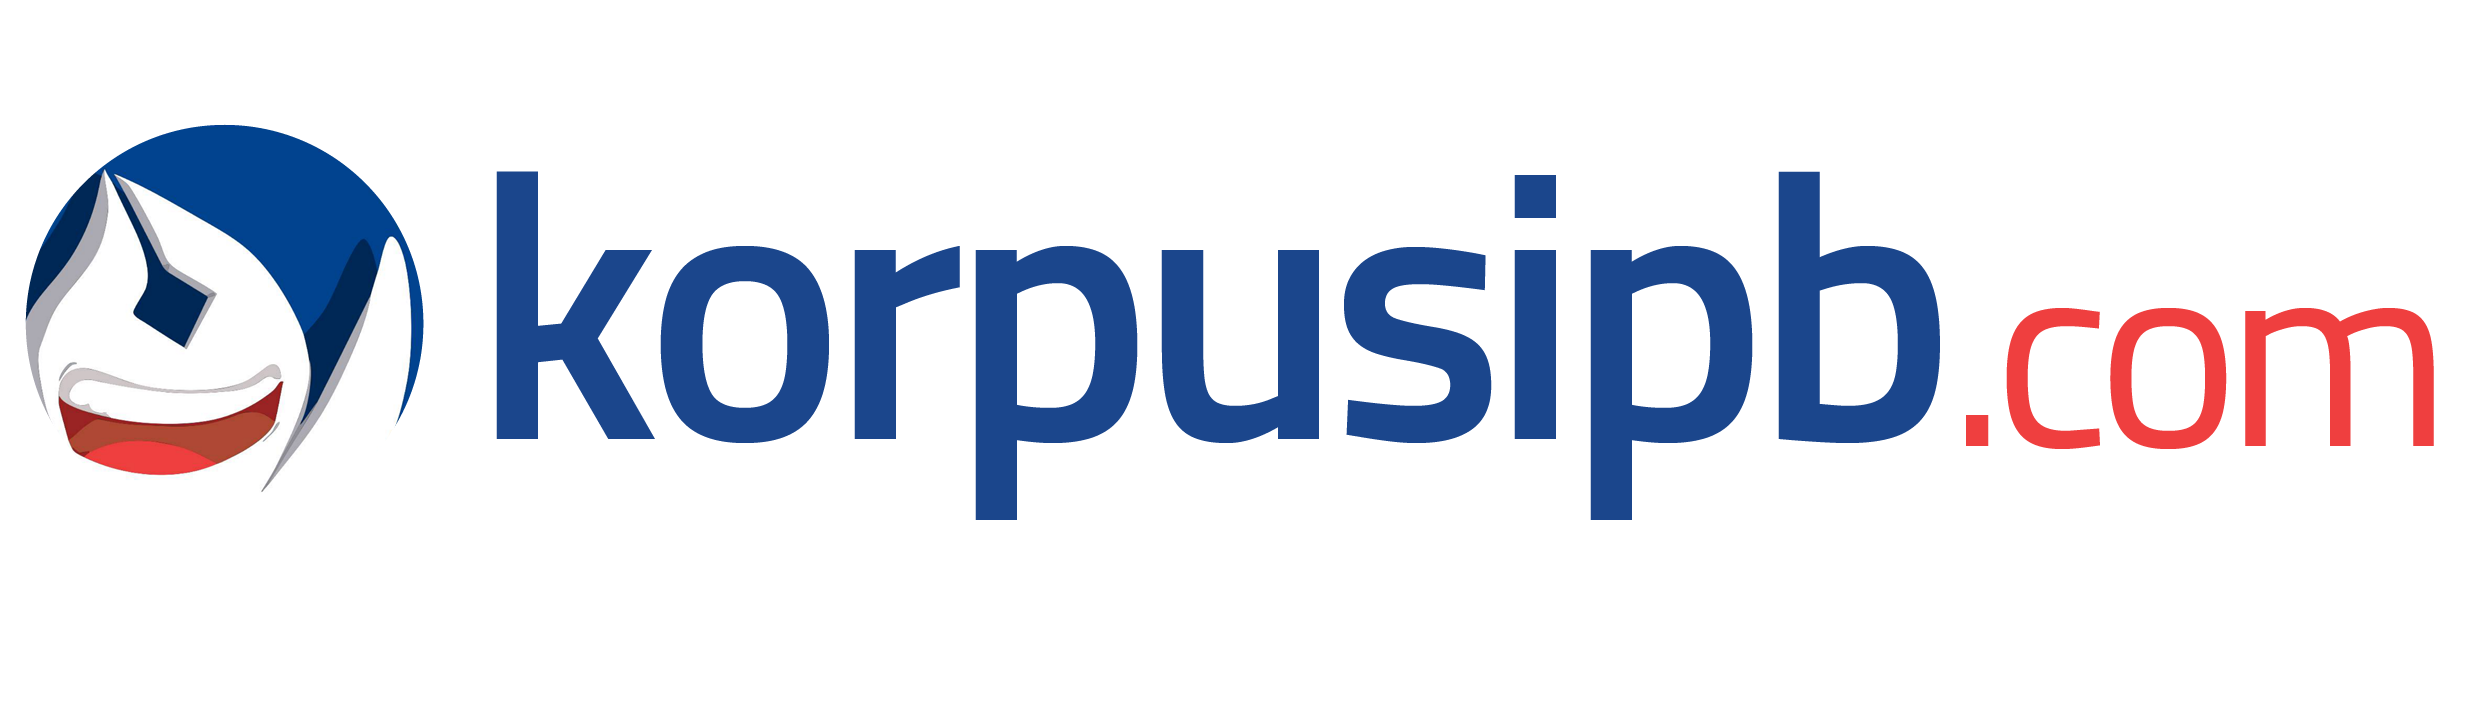 korpusipb